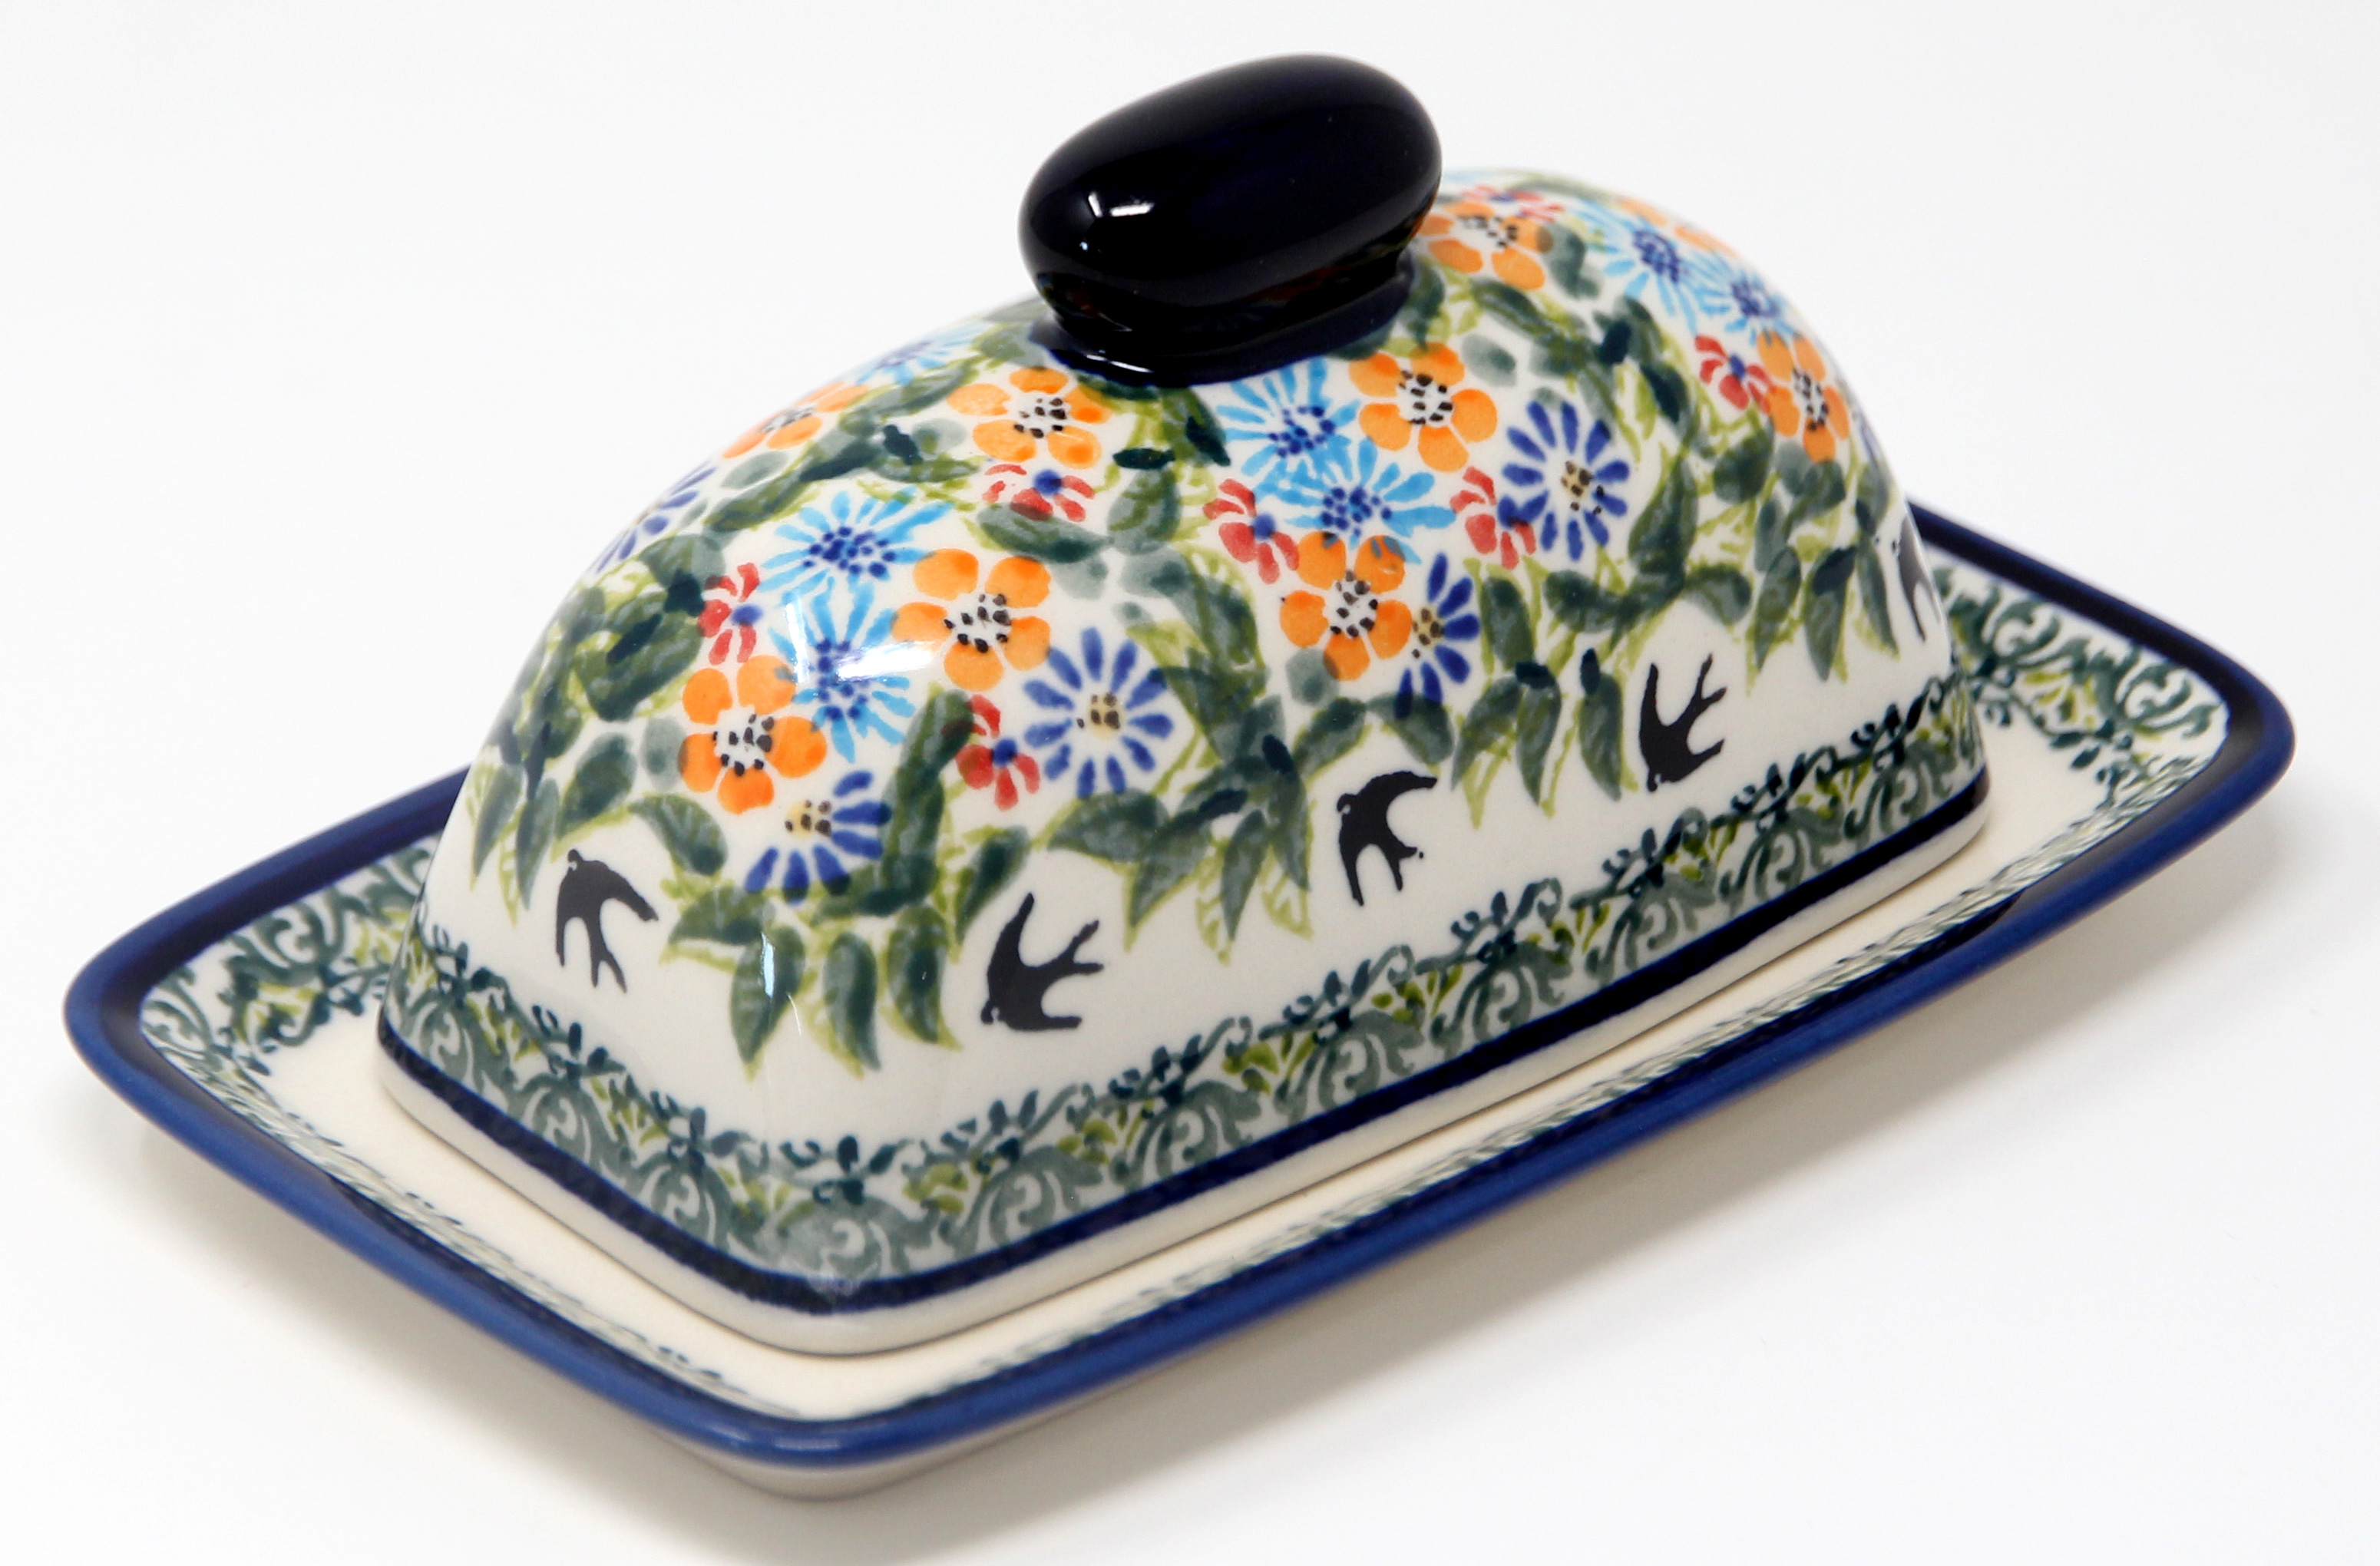 Butter Dish Polish Pottery in DU182 Pattern